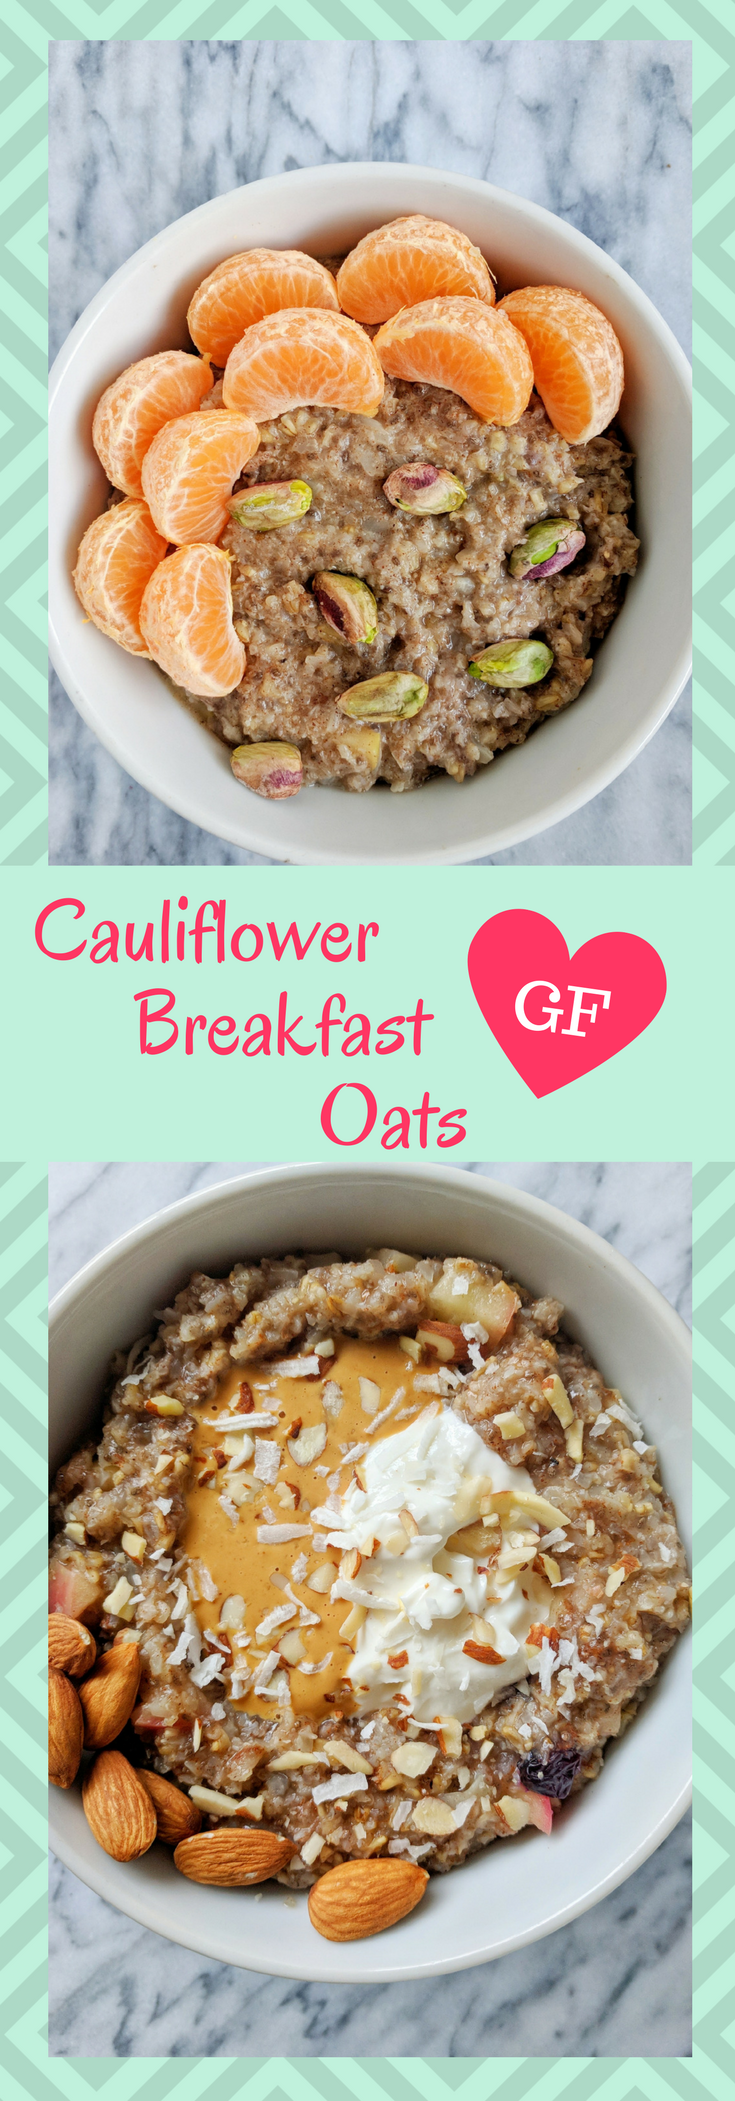 Hearty steel cut oats with riced cauliflower, almond milk and delicious toppings. #healthy #breakfast #cauliflower #oats